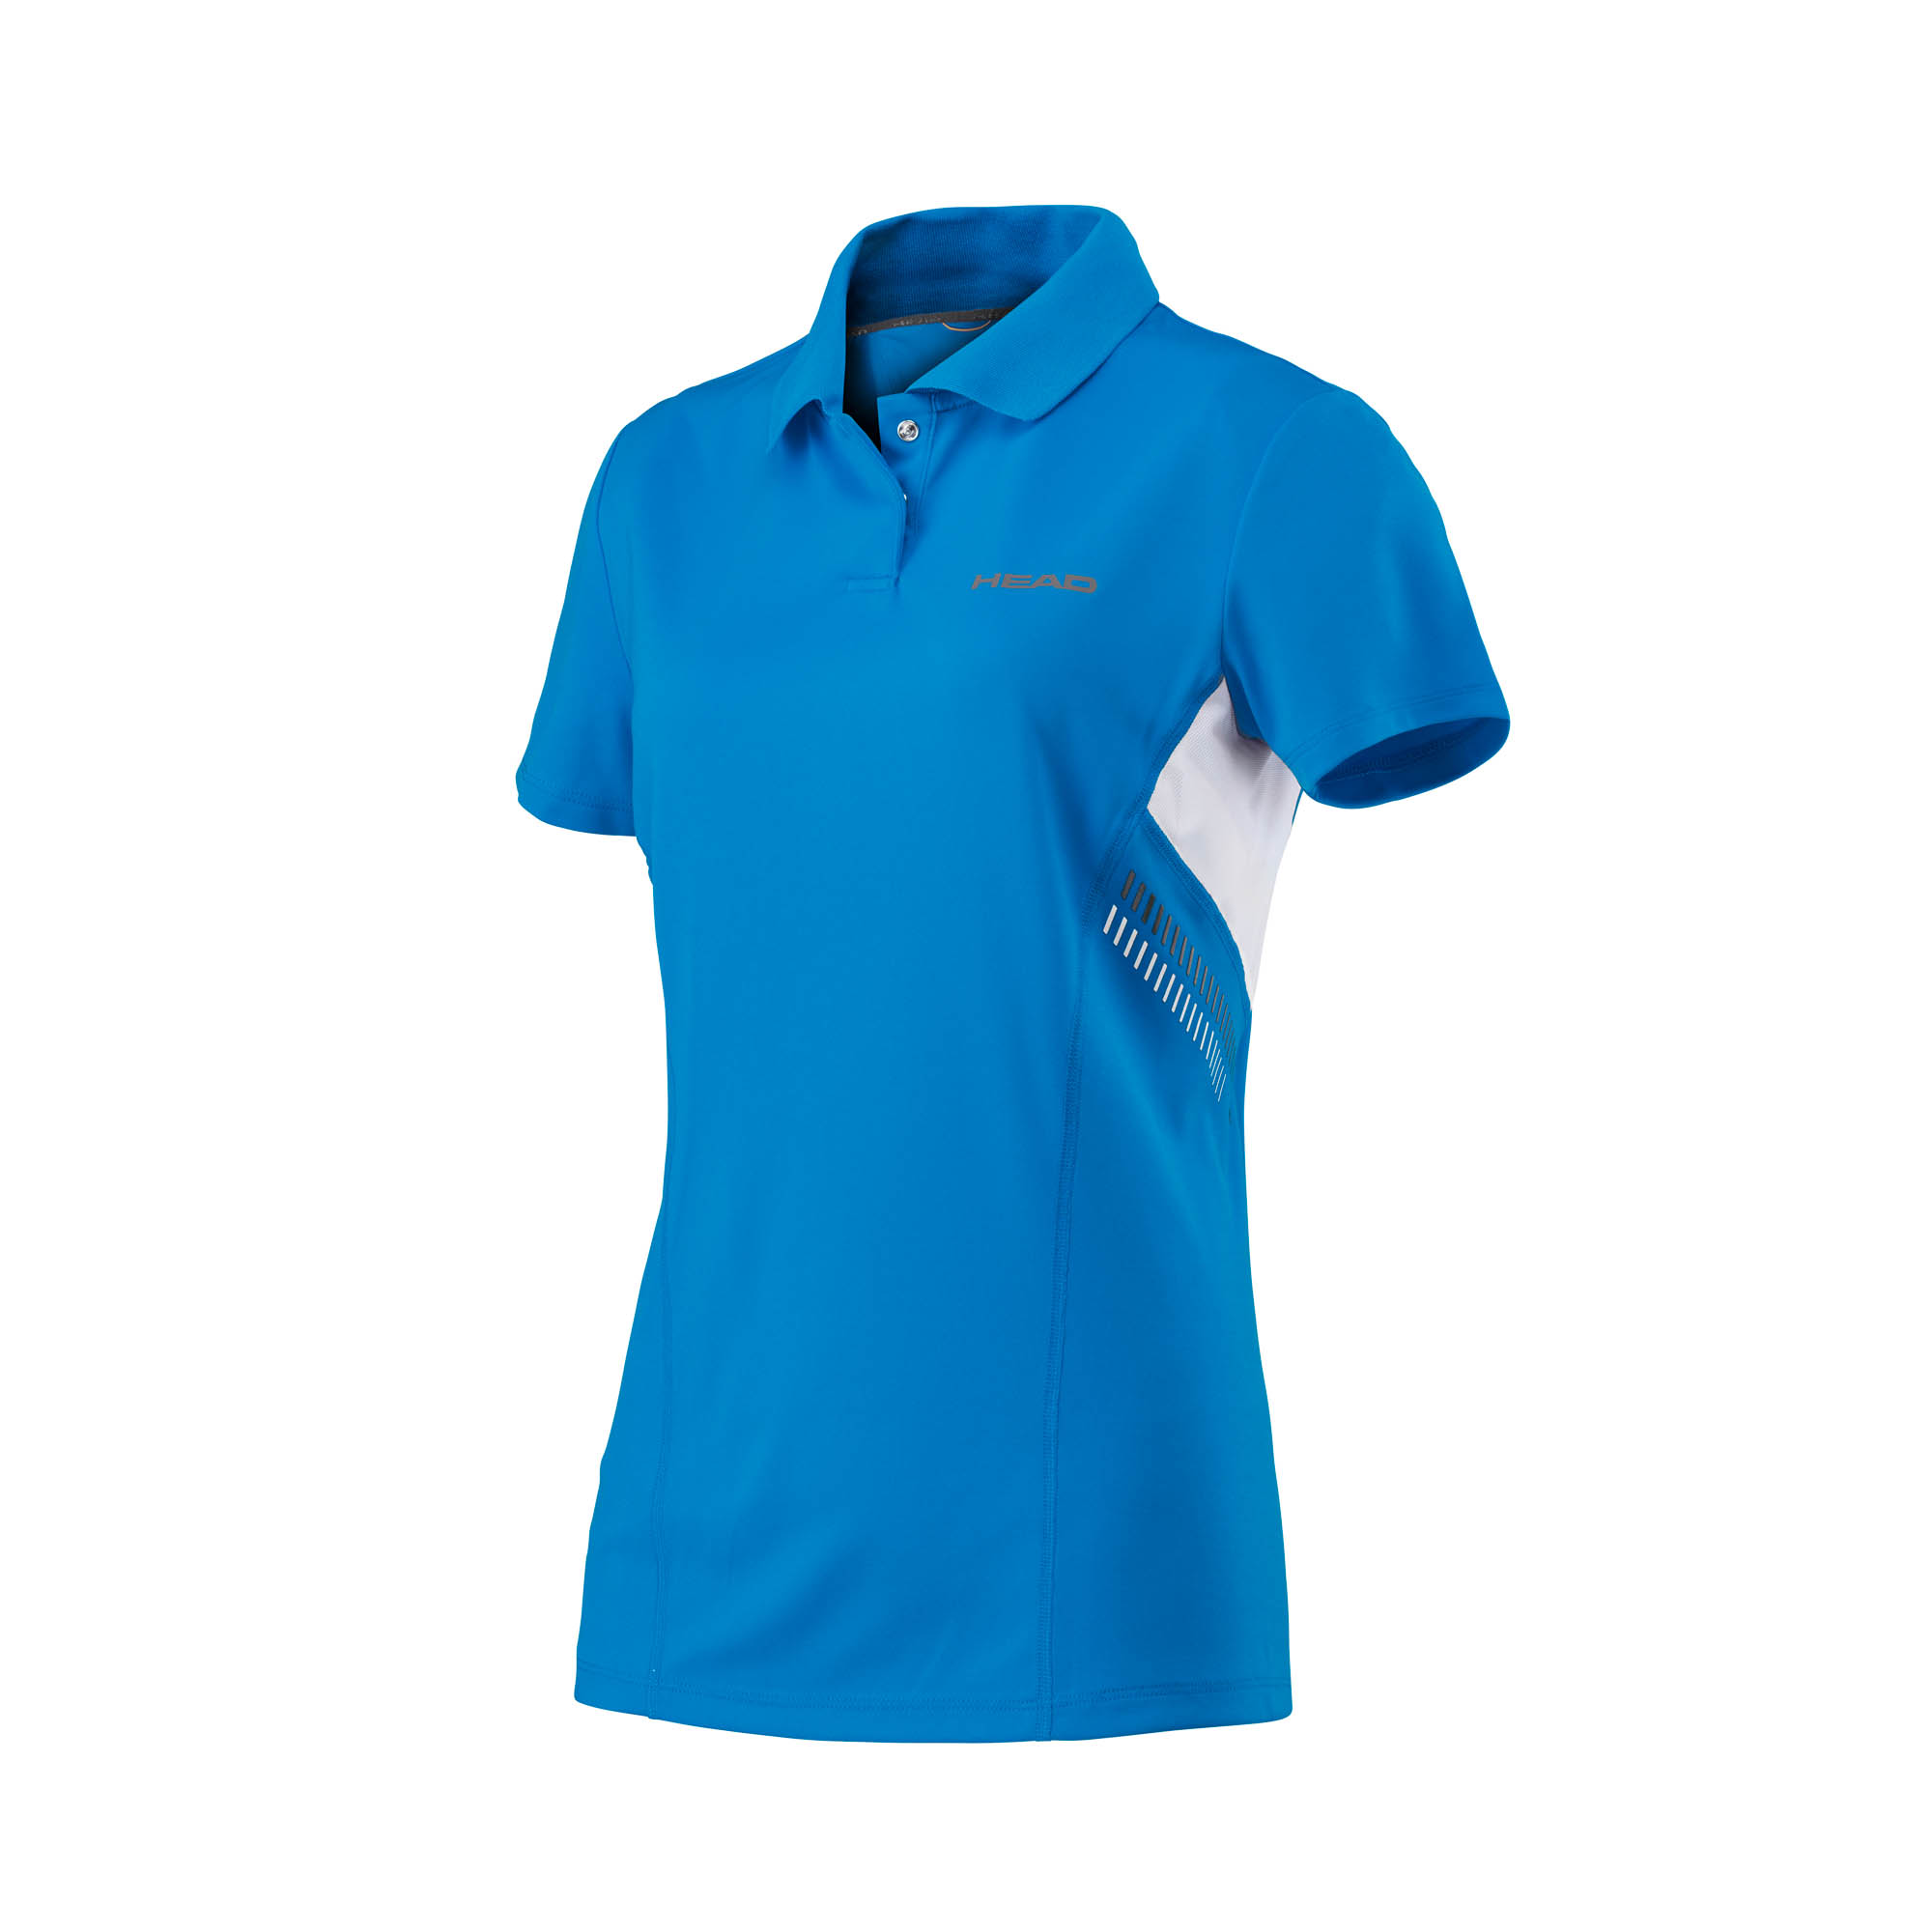 Head Club Technical Ladies Polo Shirt - Blue, S